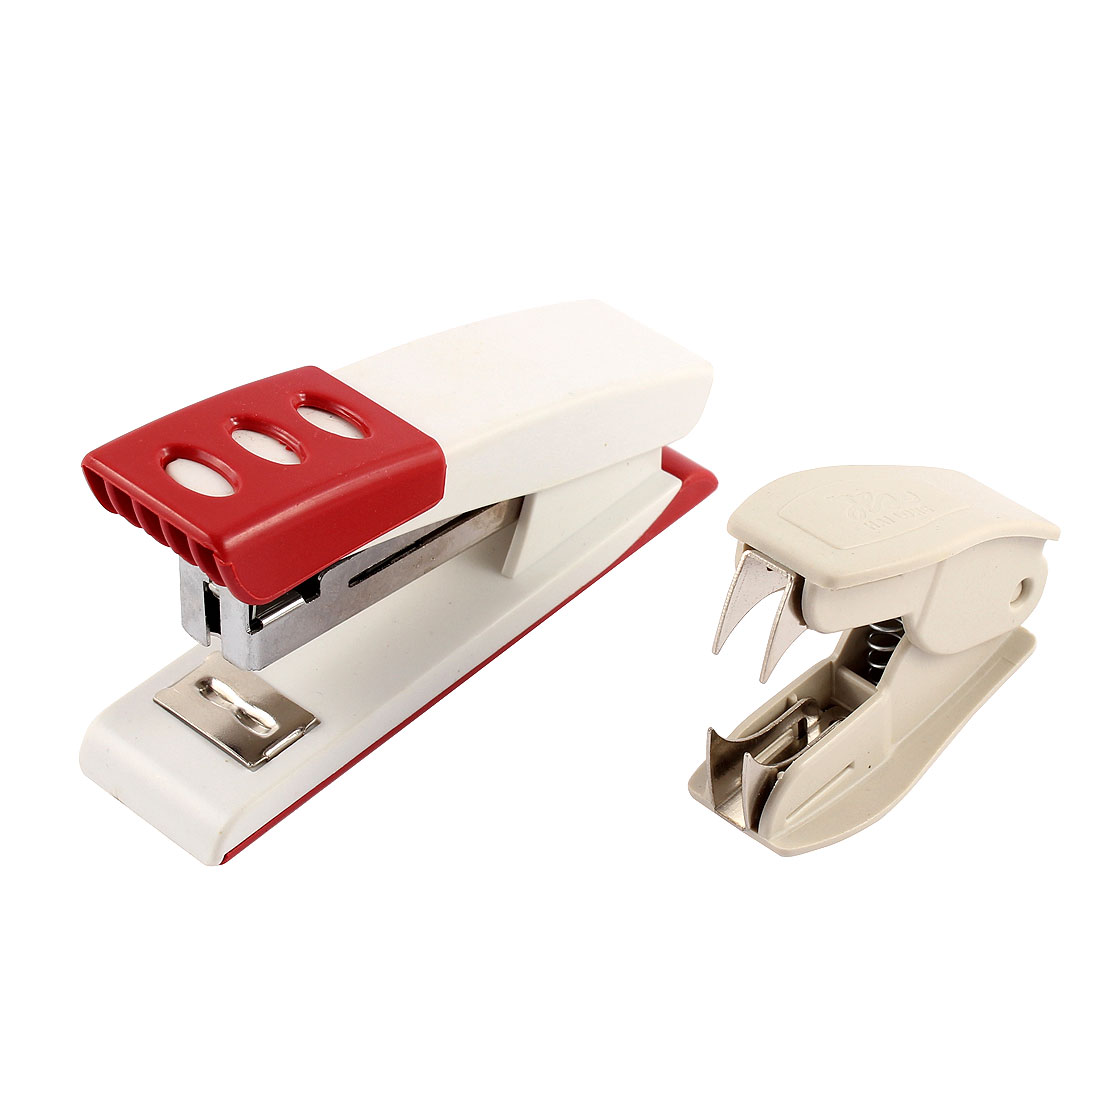 Papers Book Stapling 2 in 1 Red White Plastic Shell Stapler Beige Staple Remover for School